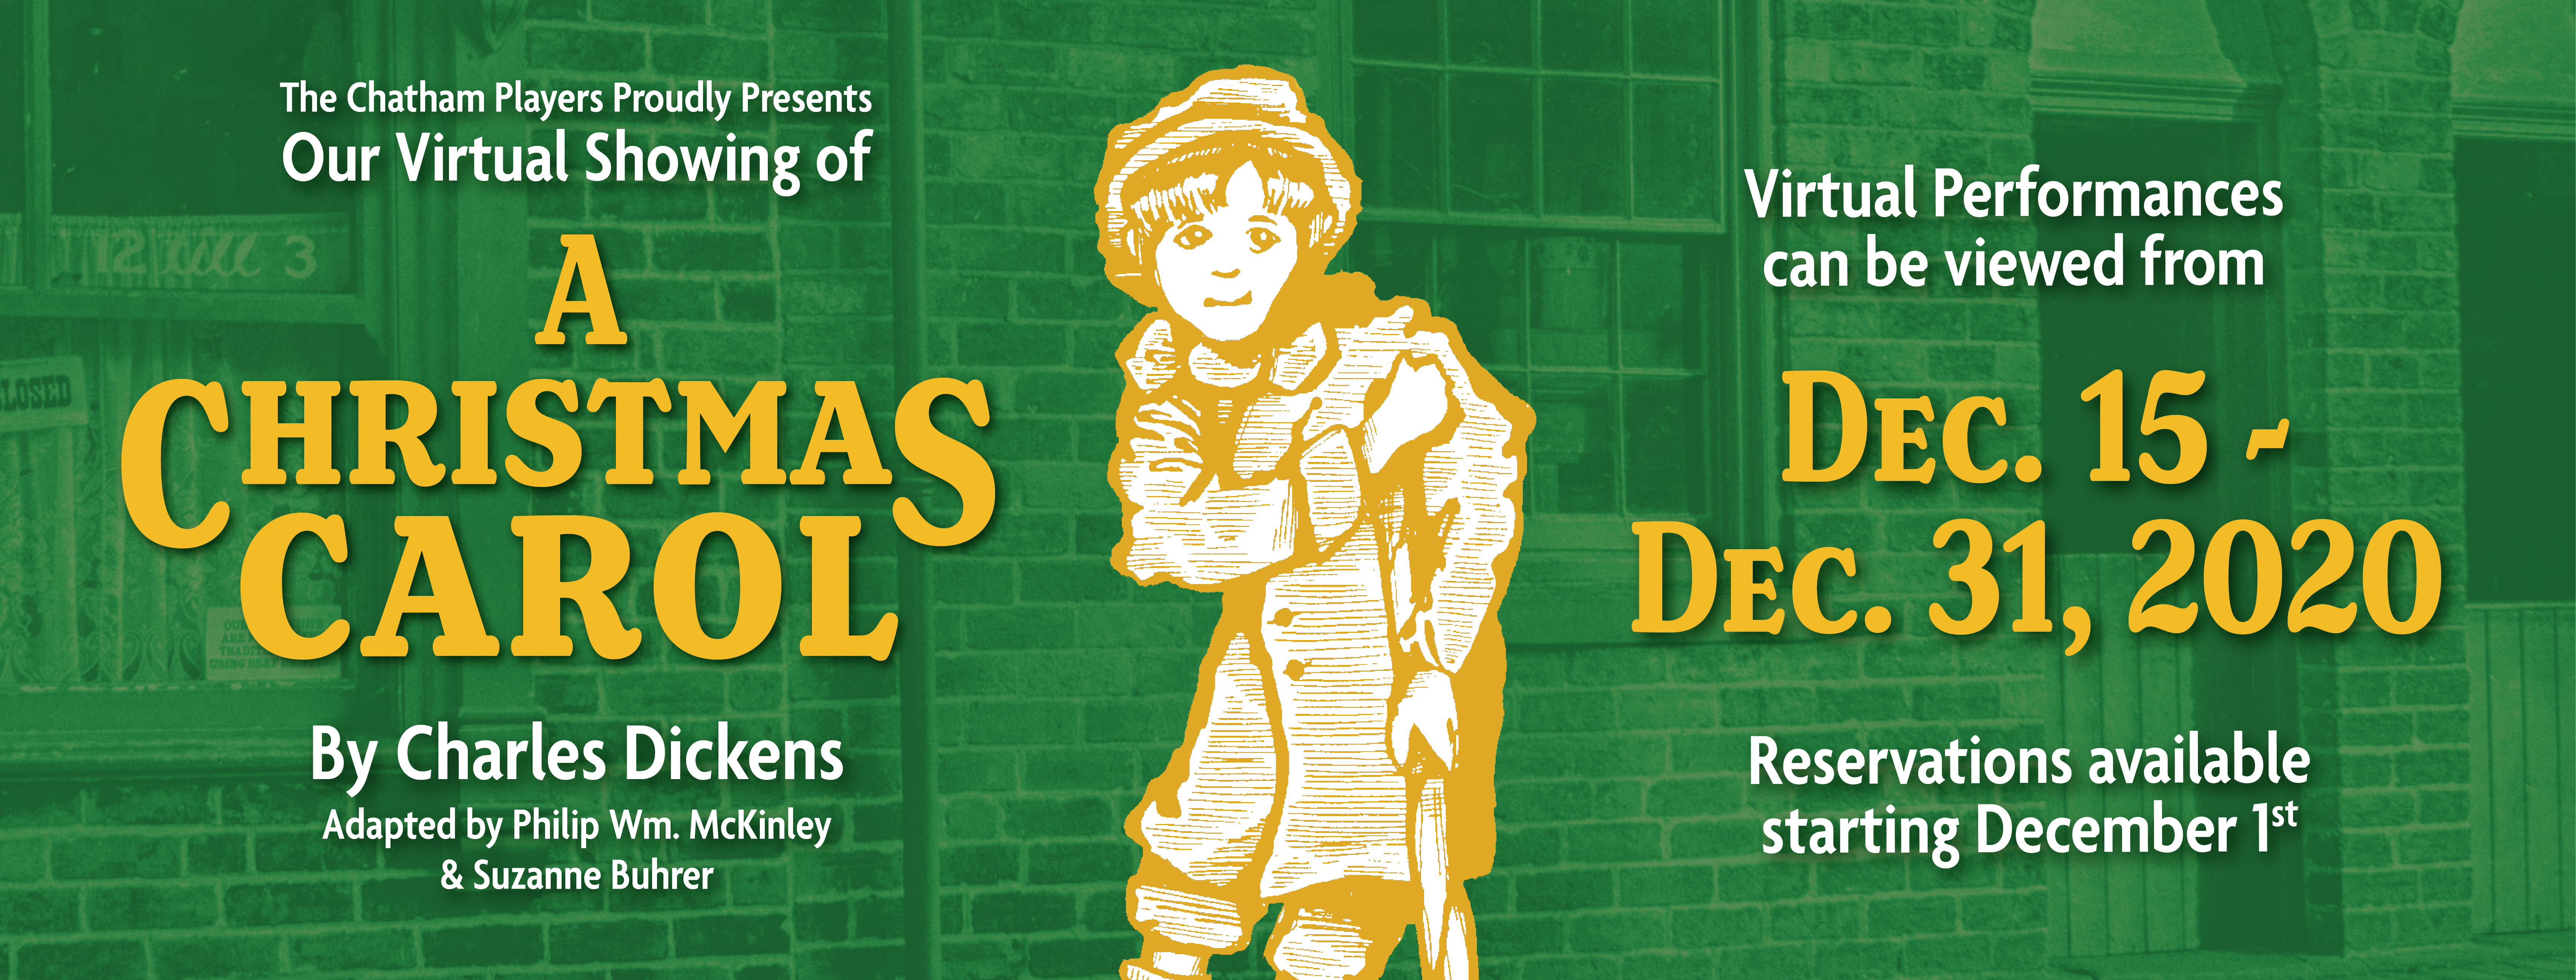 A Christmas Carol - Special Streaming Production